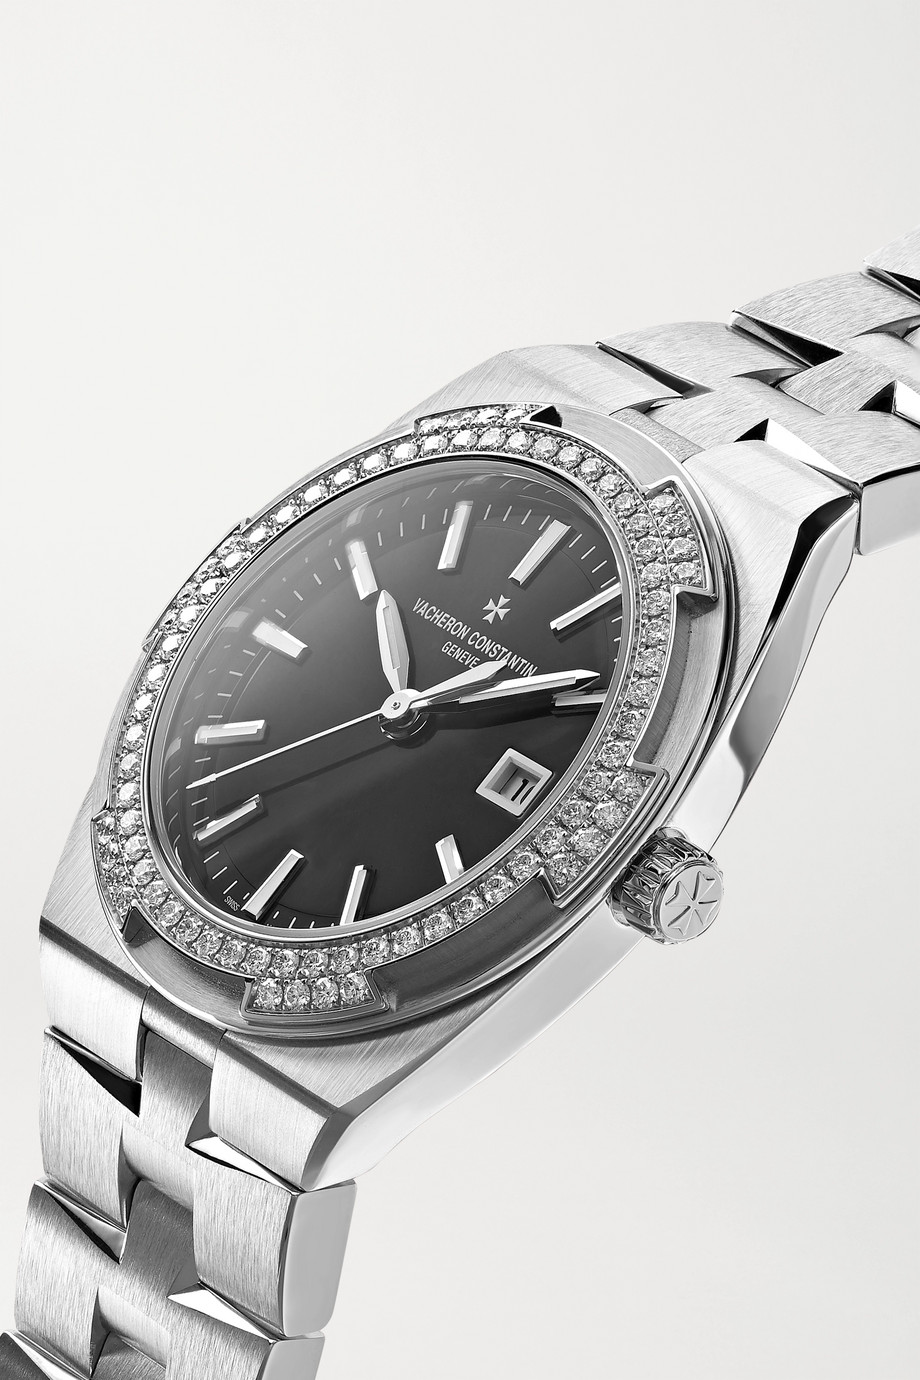 Vacheron Constantin Overseas 33mm stainless steel and diamond watch